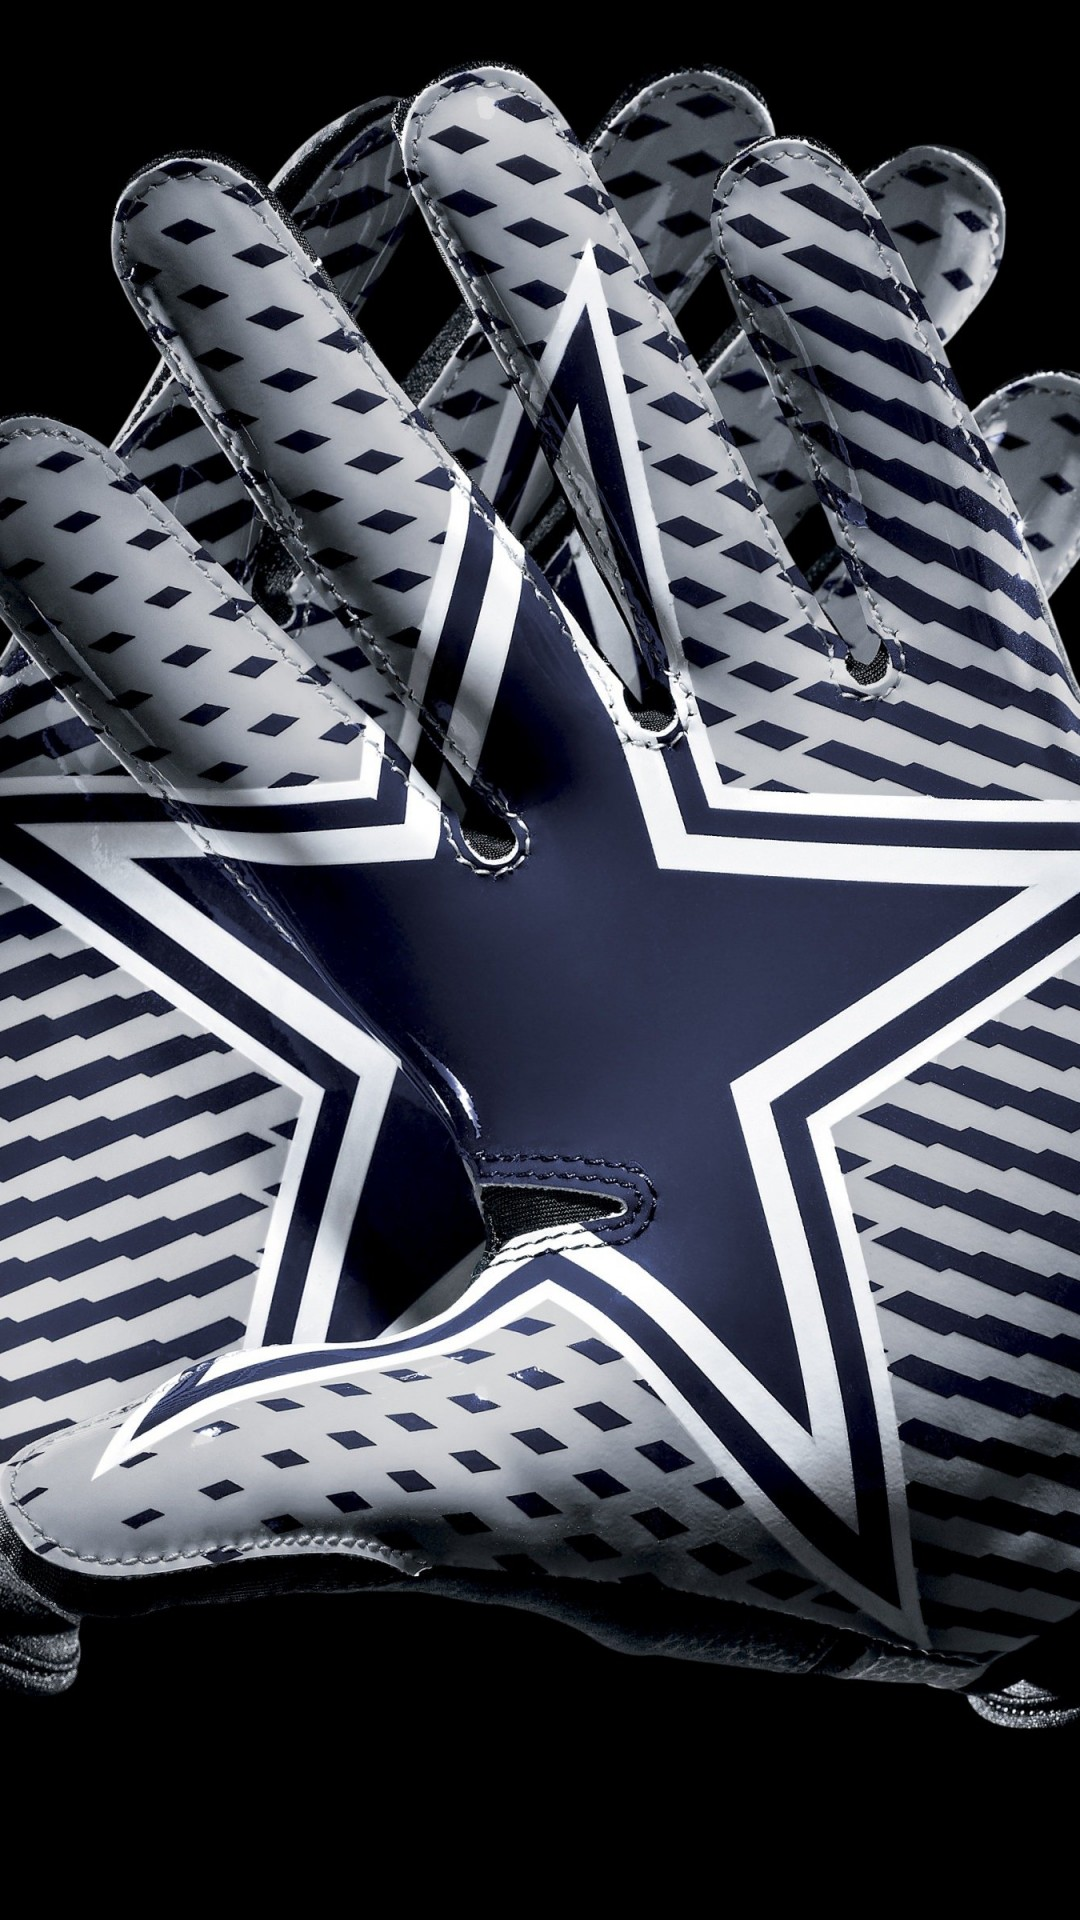 Dallas Cowboys Gloves Wallpaper for SAMSUNG Galaxy S4